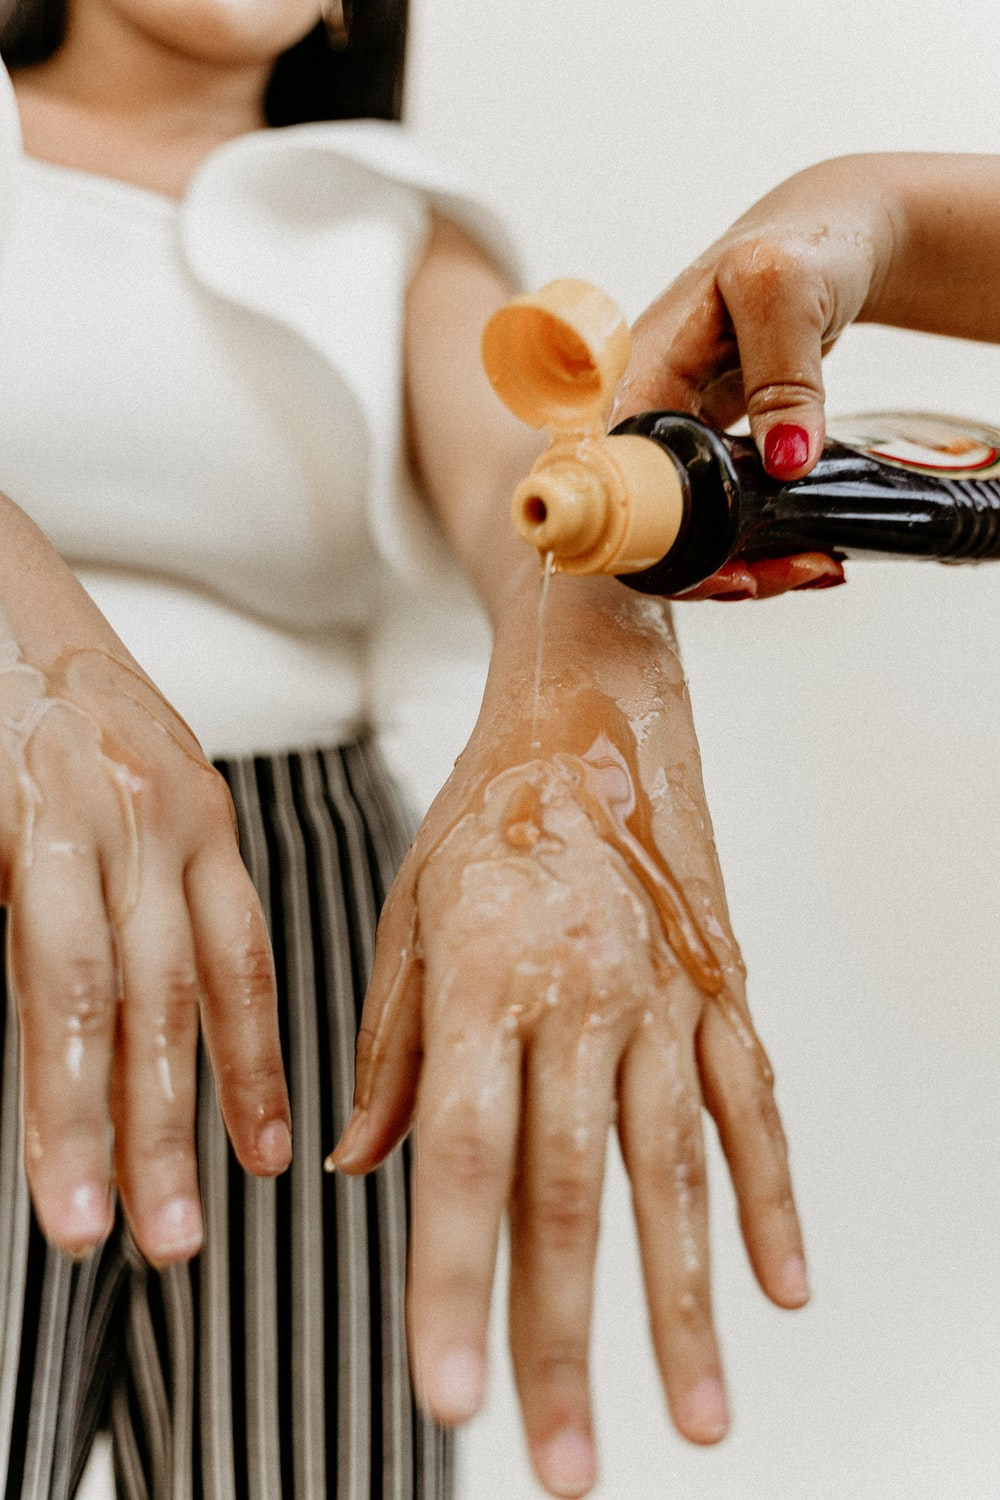 person pouring brown liquid on womans hand